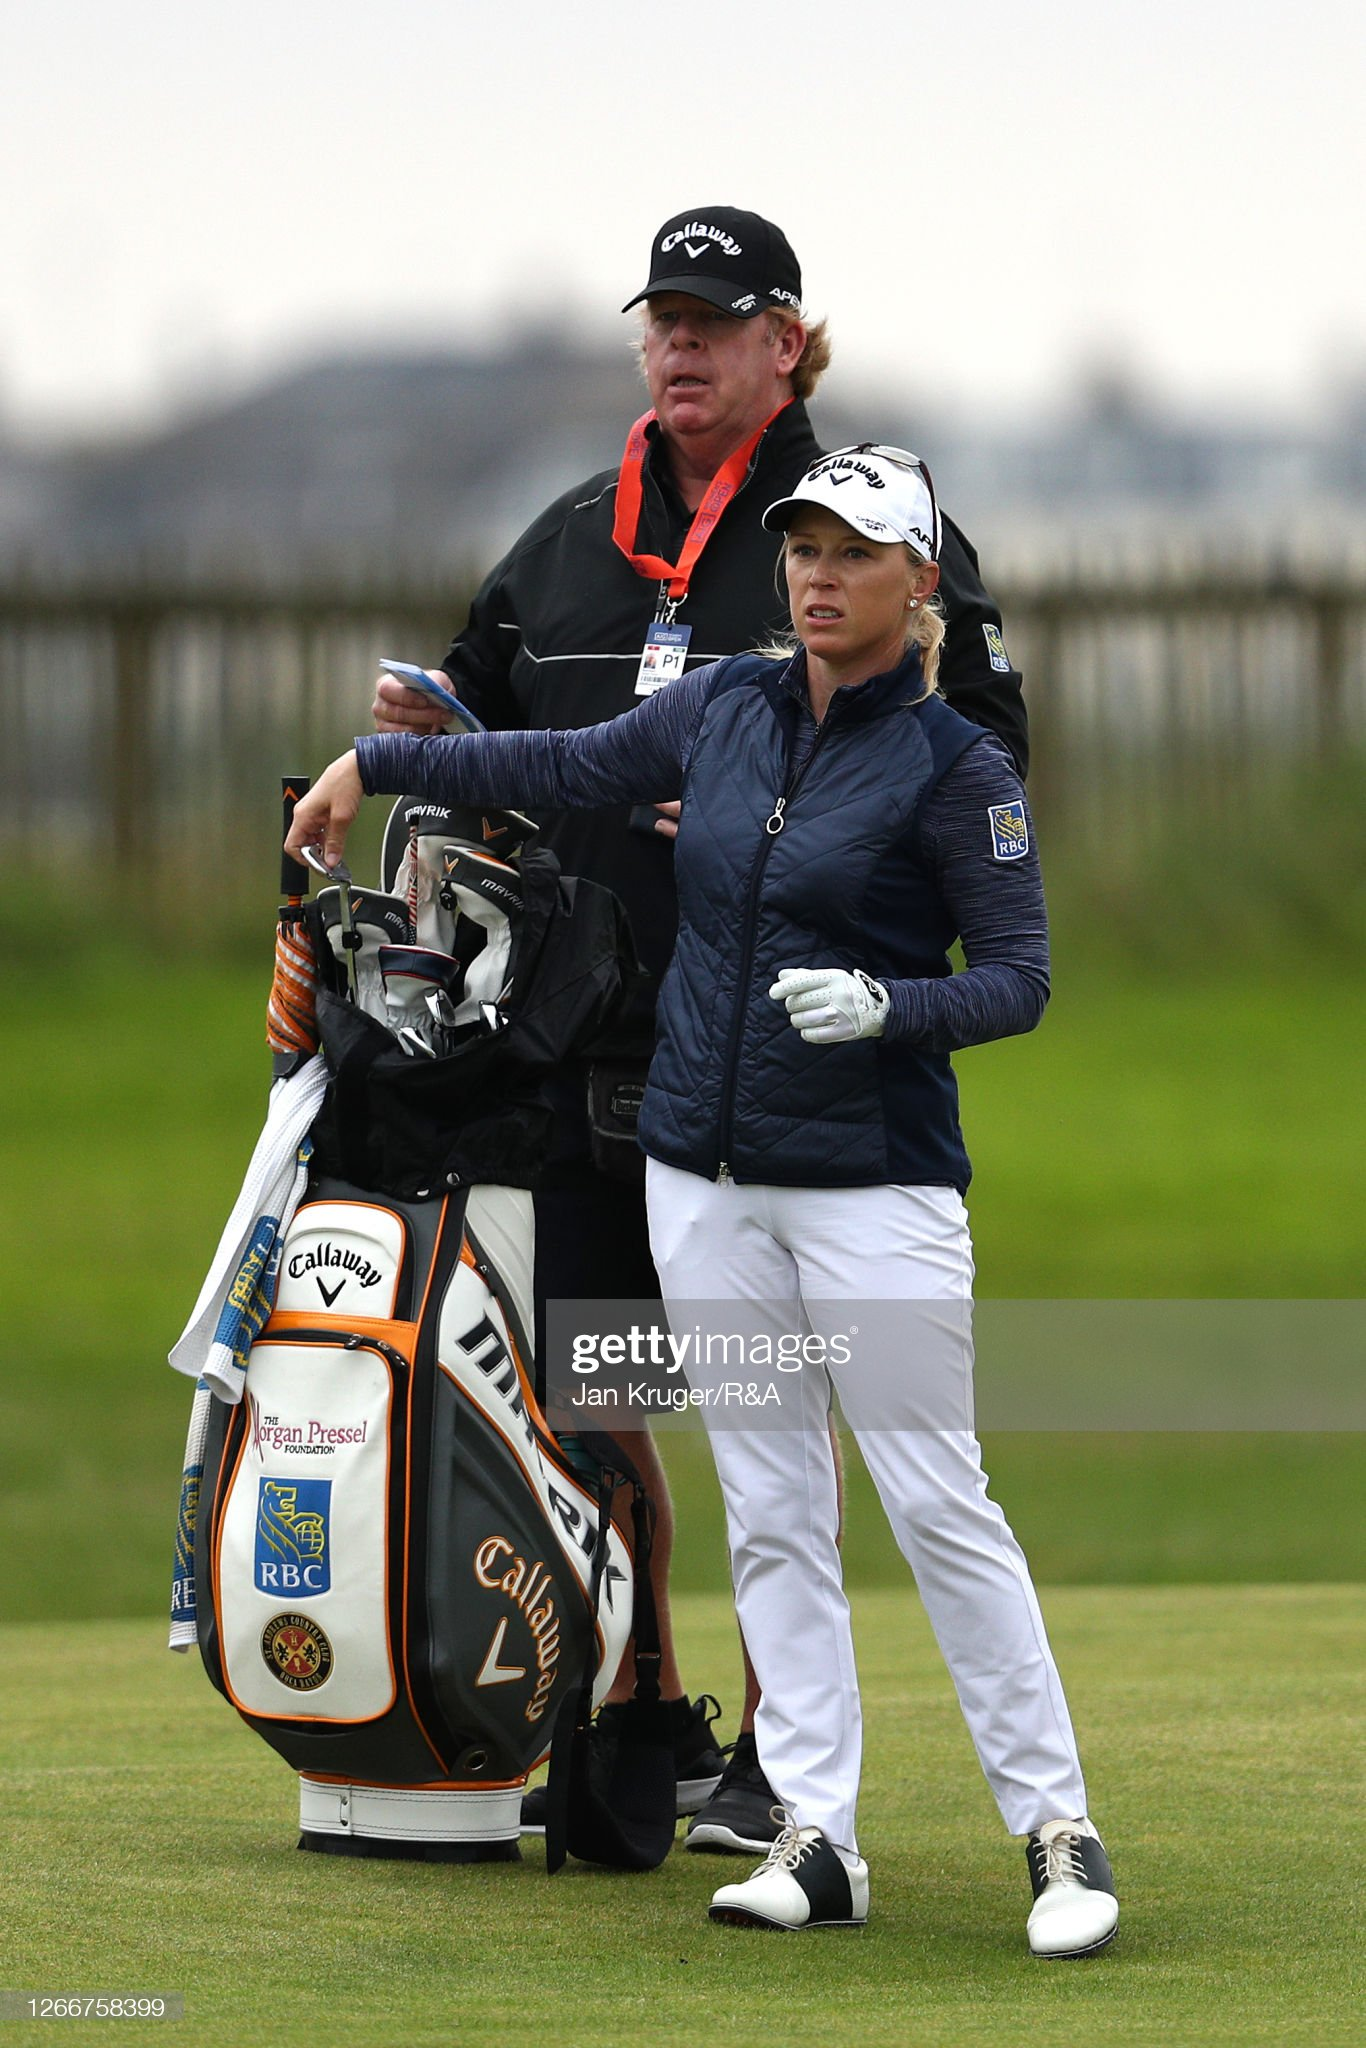 https://media.gettyimages.com/photos/morgan-pressel-of-united-states-of-america-in-action-during-a-round-picture-id1266758399?s=2048x2048